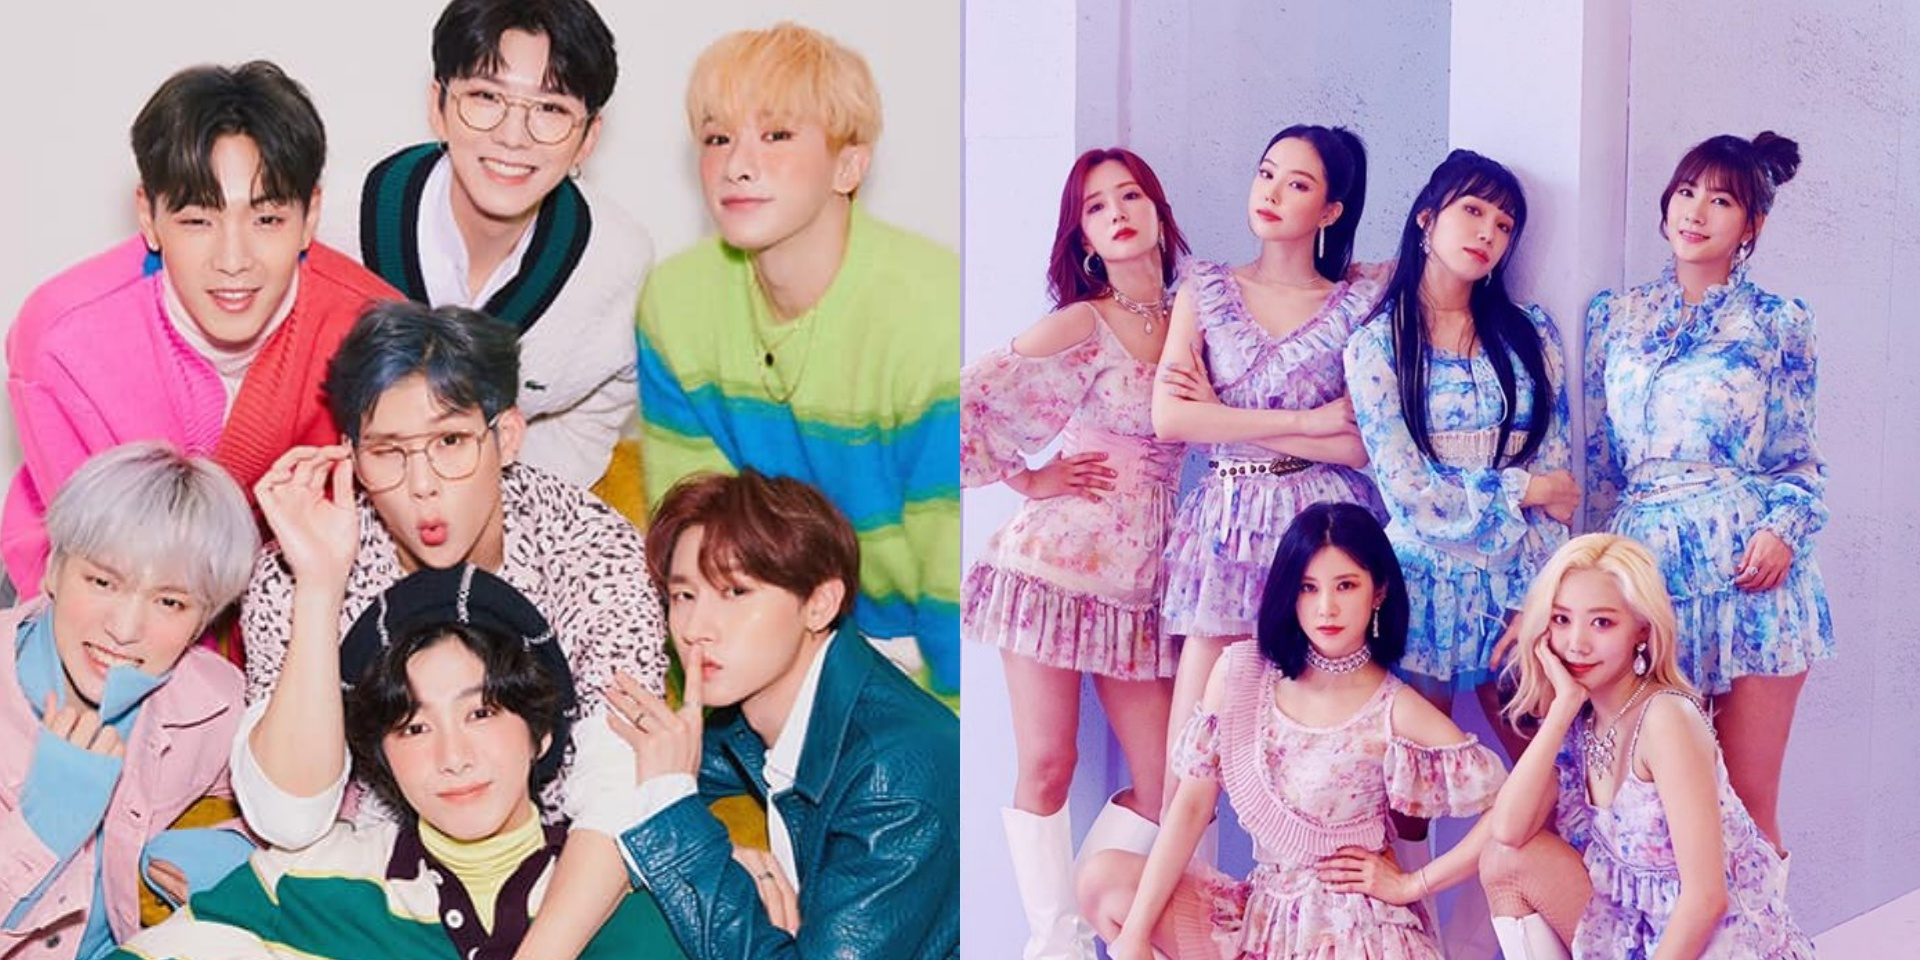 AKMU, Apink, iKON, MONSTA X, and more to perform in TikTok's K-pop concert series to raise funds for COVID-19 relief efforts